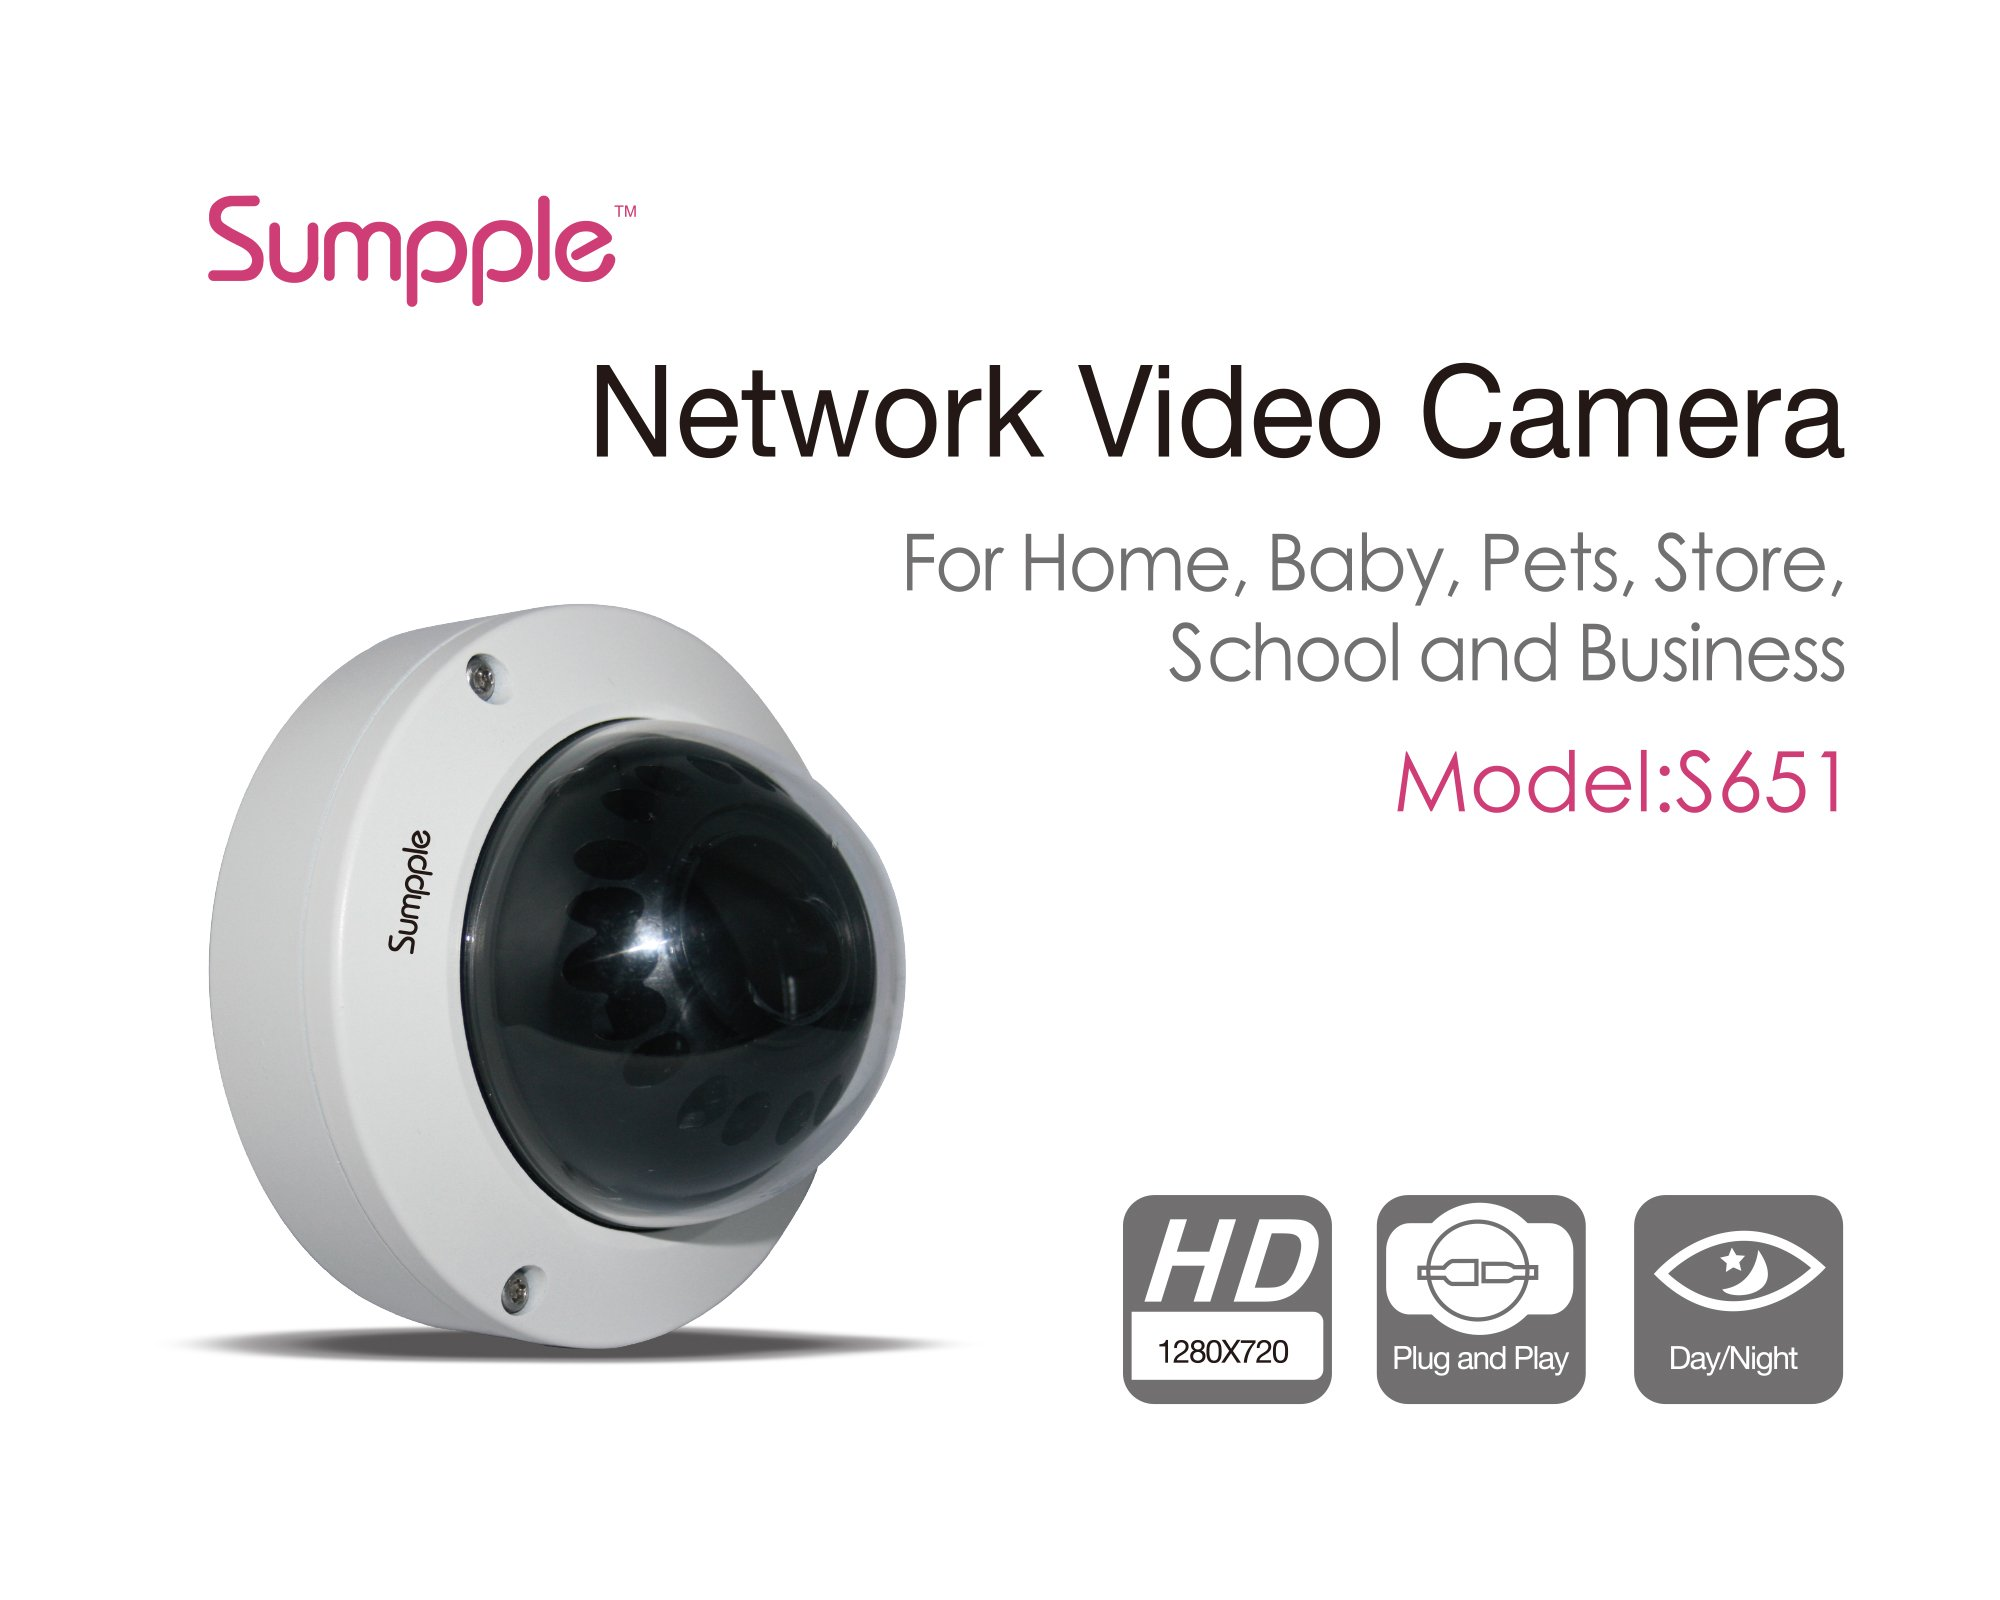 Sumpple Wired Night Vision Infrared 720P 1.0MP Security Internet Dome IP Network Camera, Motion Sensor Detection, 8X Digital Zoom, Video Record, Email Alarm, Work on iPhone, Android Phone or PC